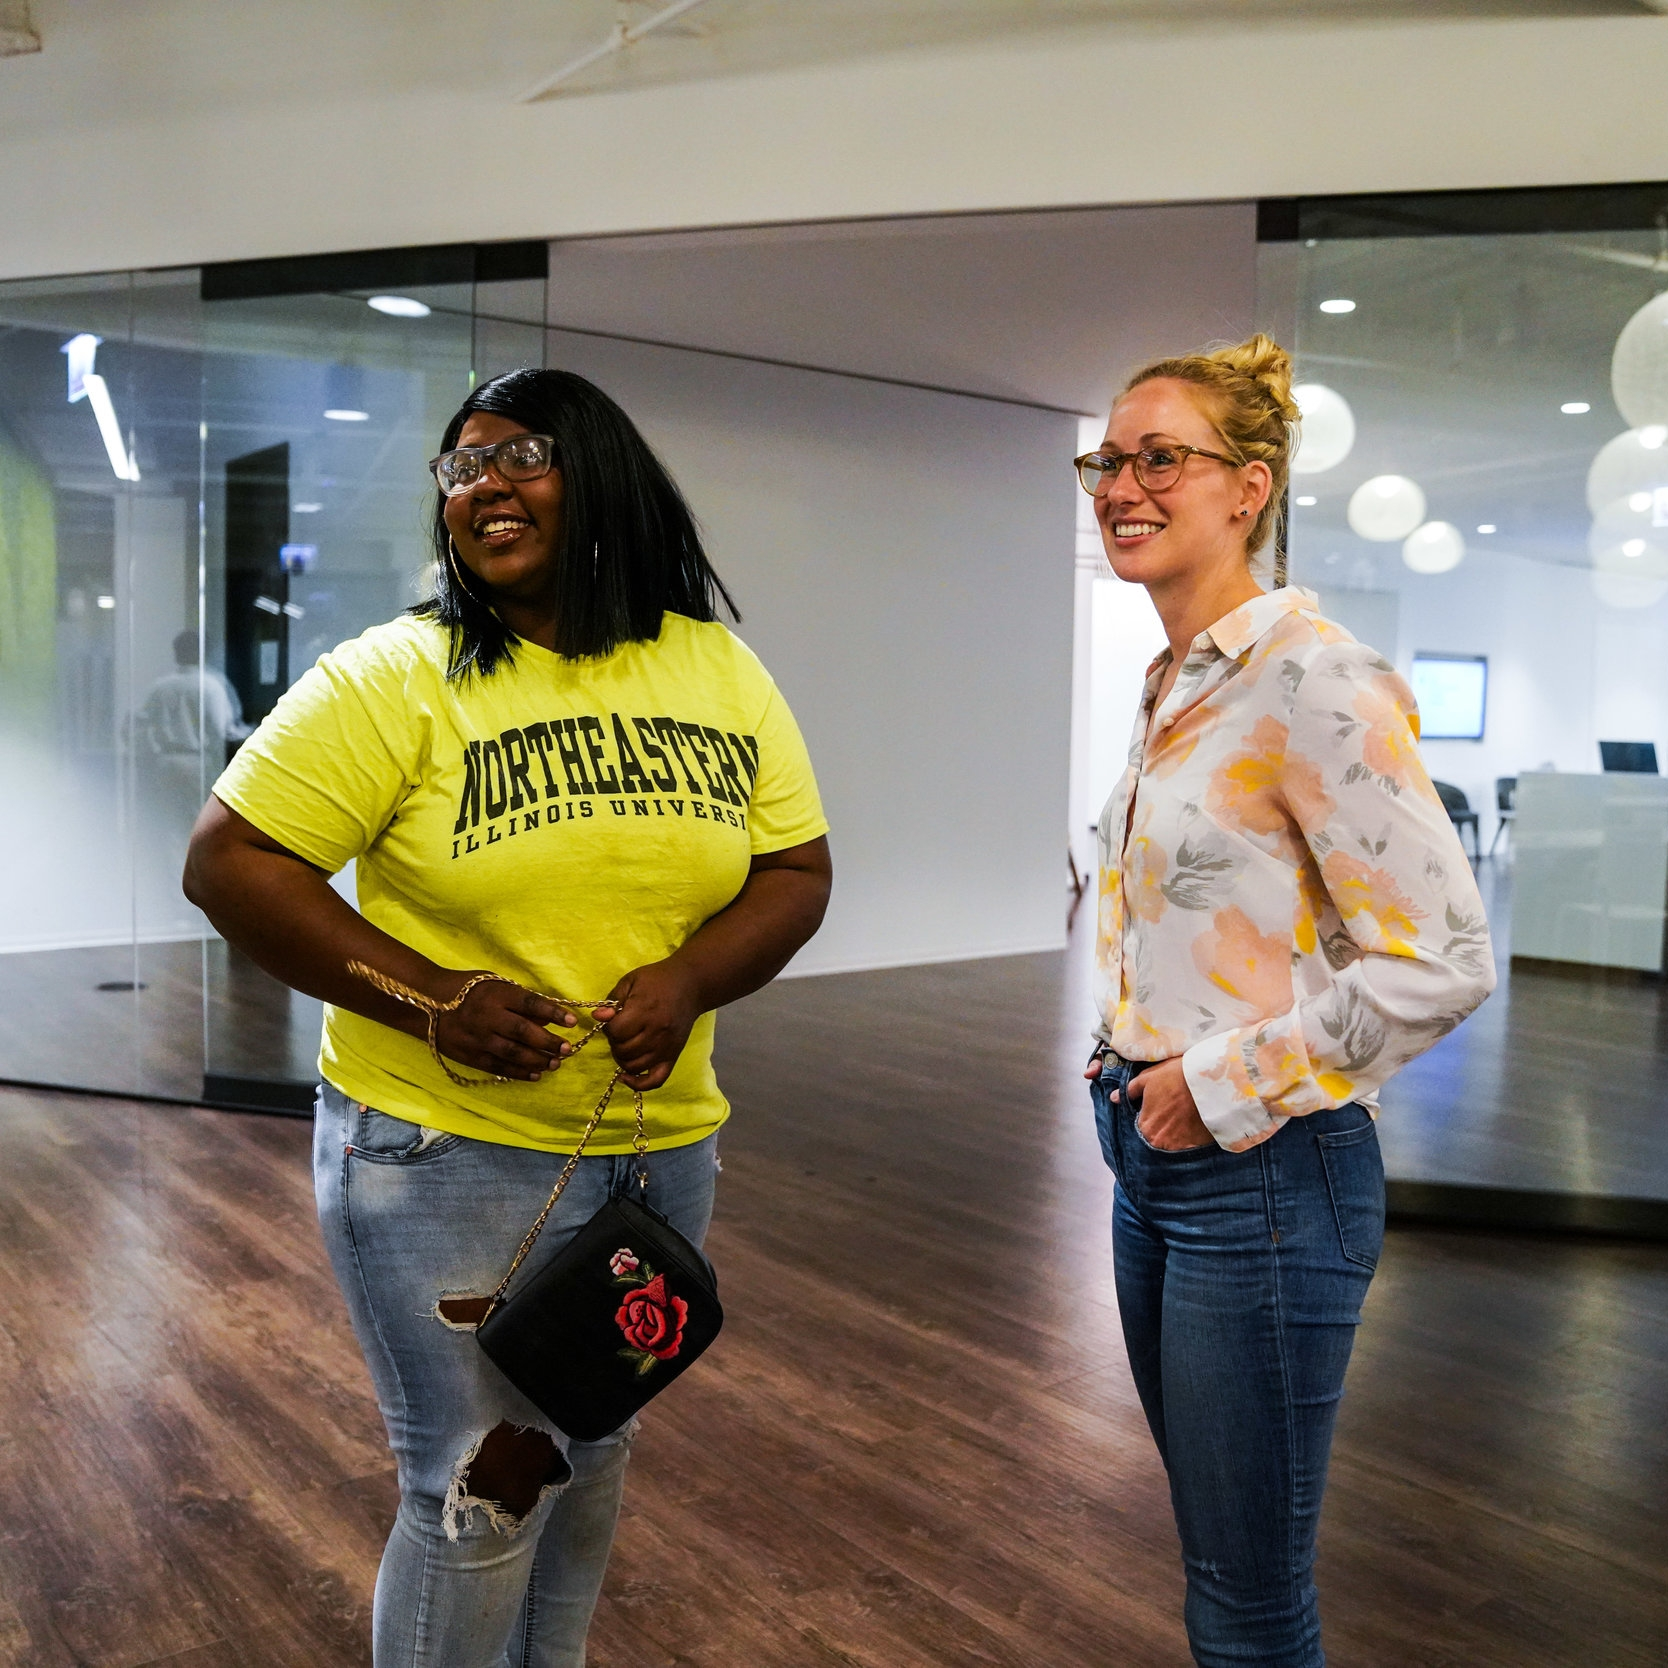 What We Do - We teach Chicago's overlooked talent how to sell software, then help them land careers with top-tier employers.